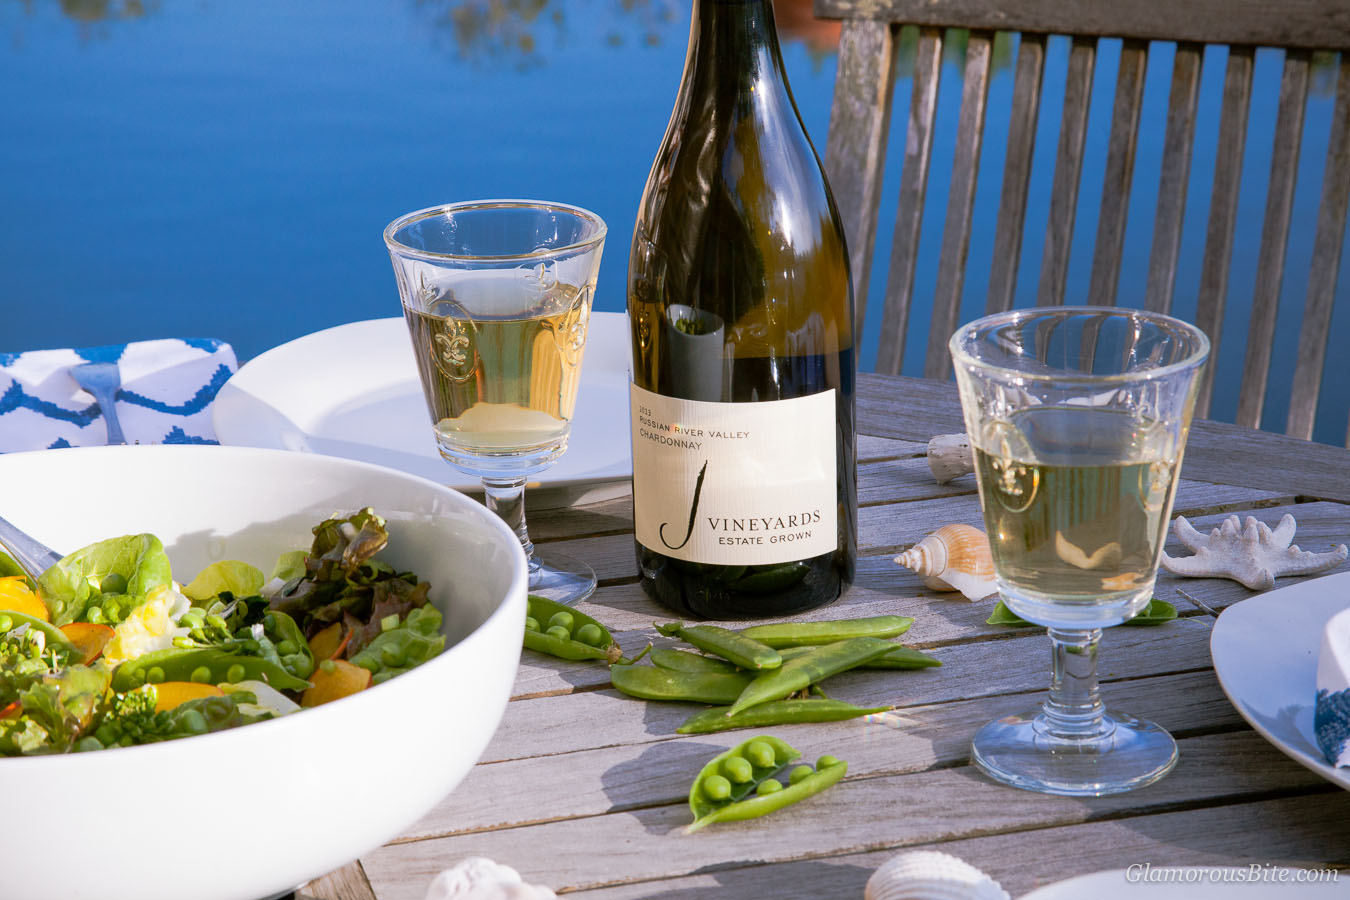 J Vineyards Chardonnay Salad